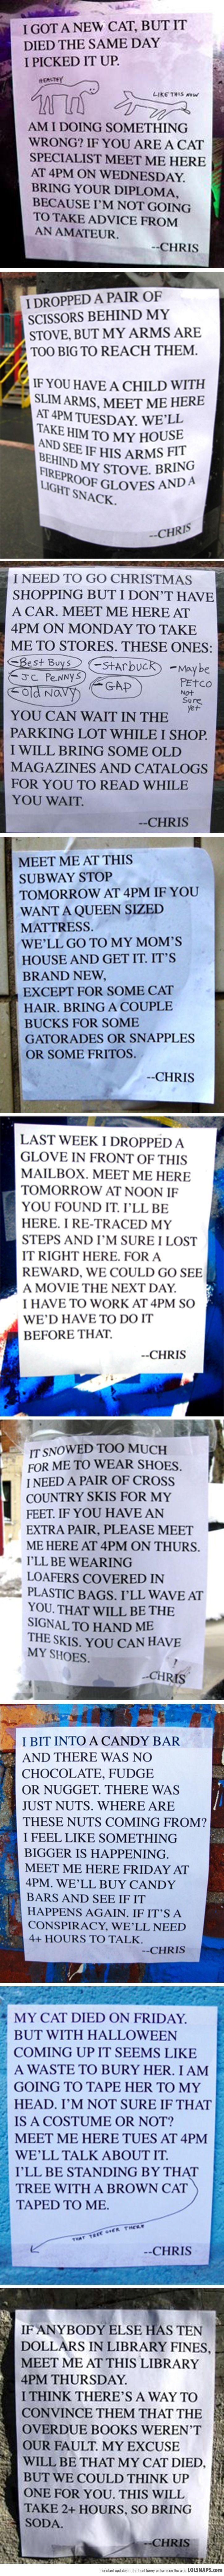 I want to be friends with Chris.